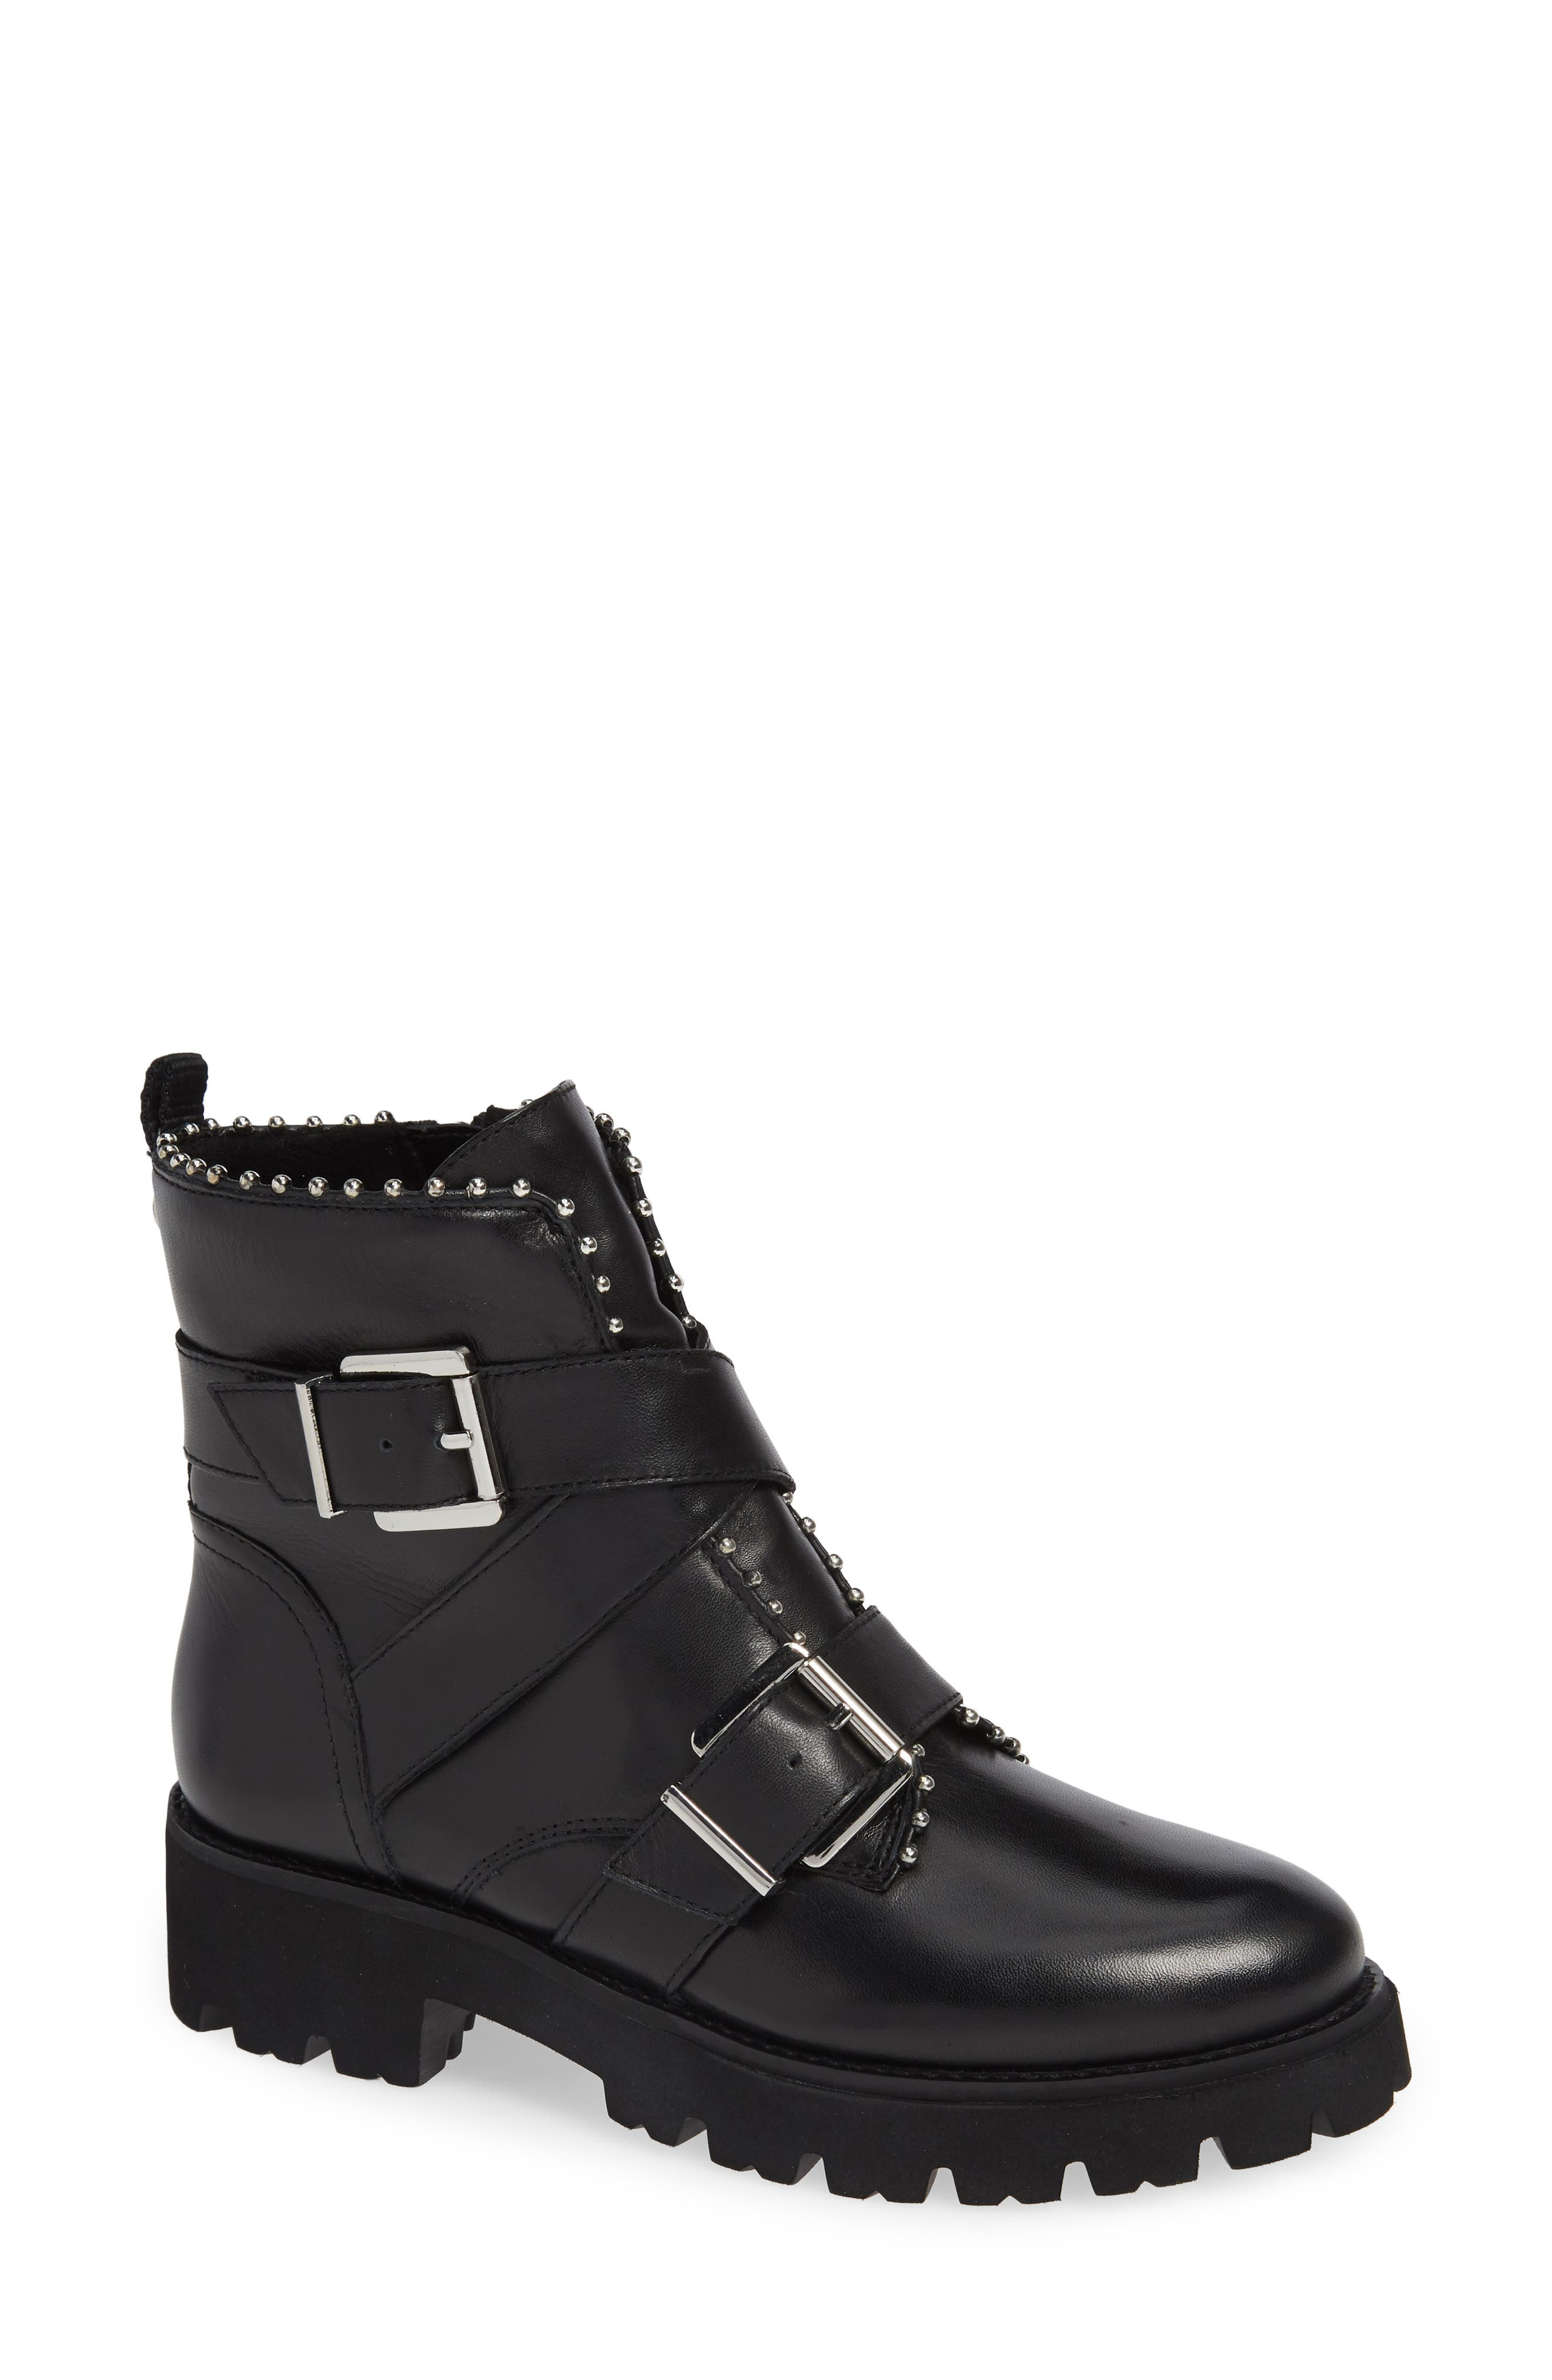 Harbor Bootie,                         Main,                         color, BLACK LEATHER